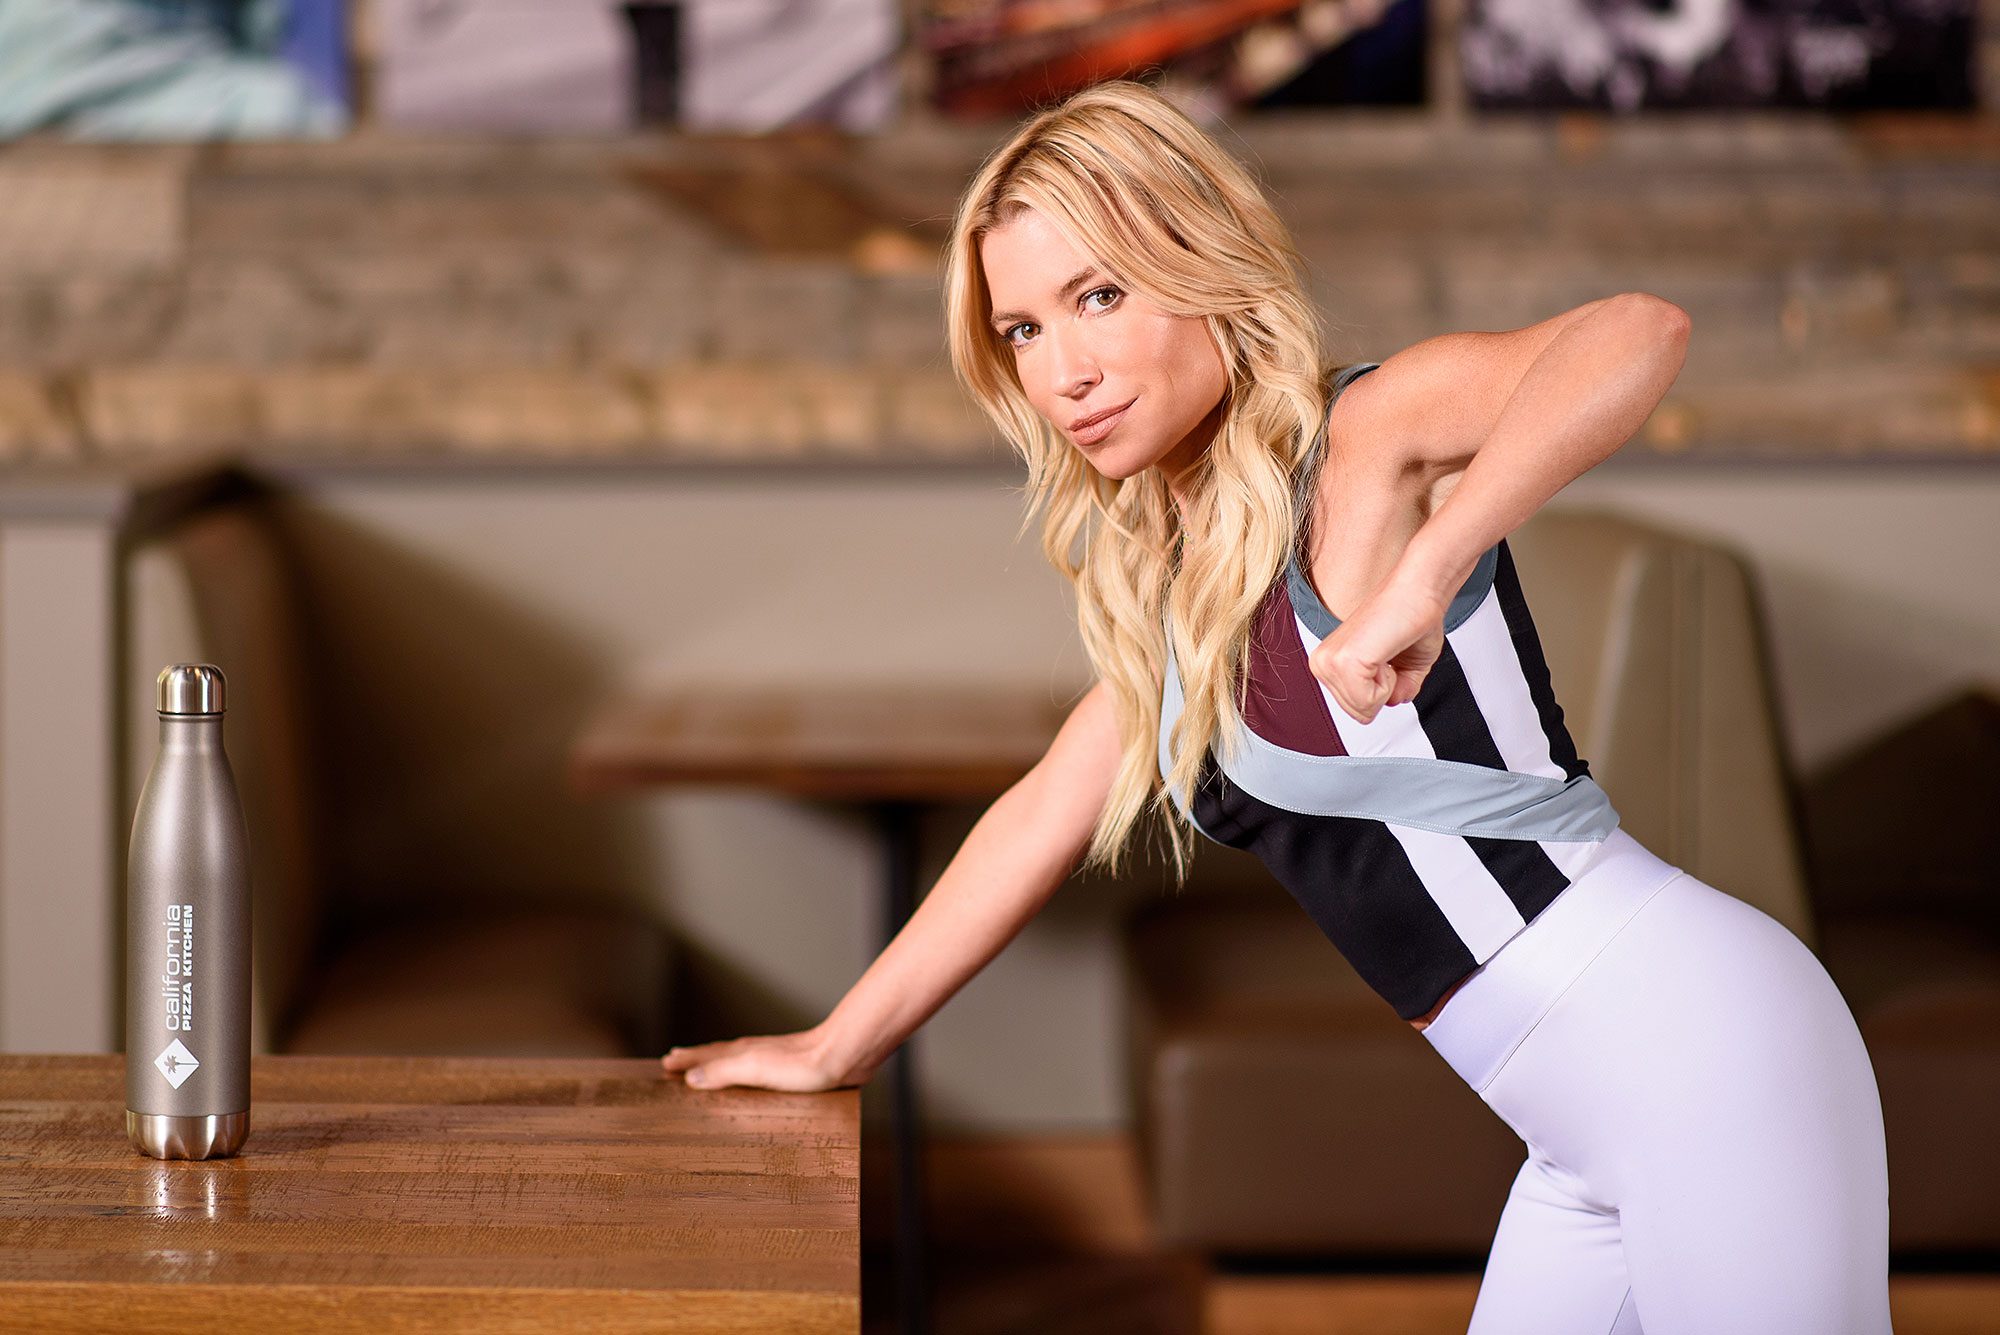 [PRIVATE FOREVER] CPK/Tracy Anderson : Promo Photo Shoot